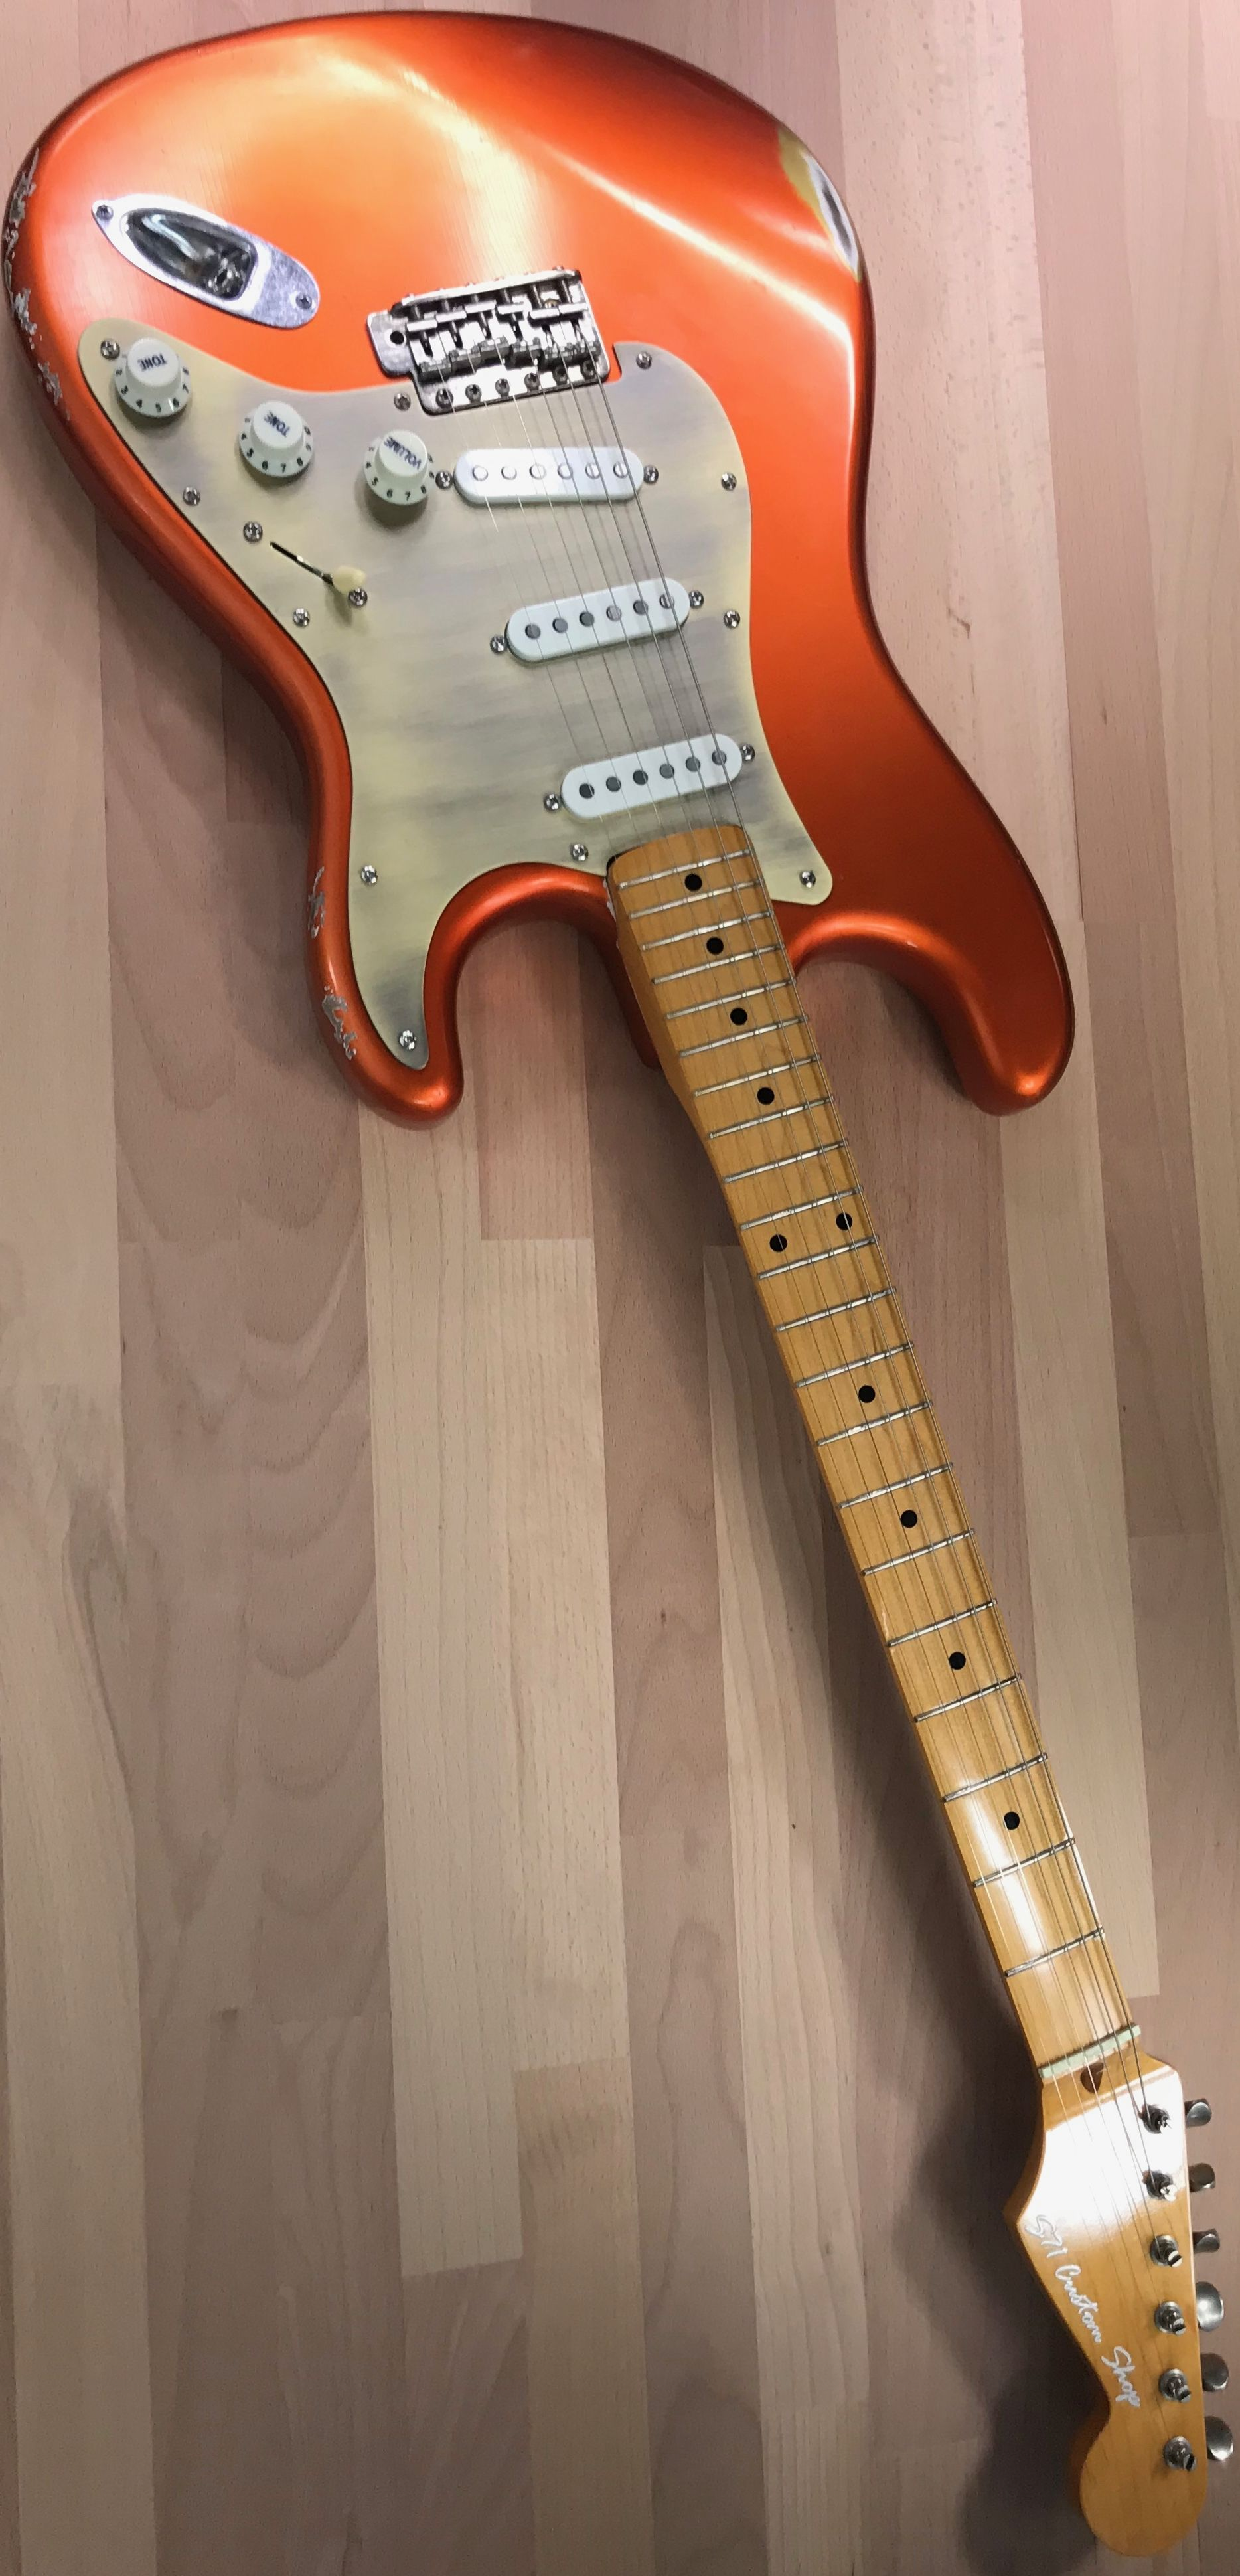 Post Modern Relic Candy Tangerine Stratocaster Custom Shop Handcrafted By S71 Guitars Wildwood California Alder Body Reliced By Mjt U Stratocaster Guitar Guitar Guitar Tuners